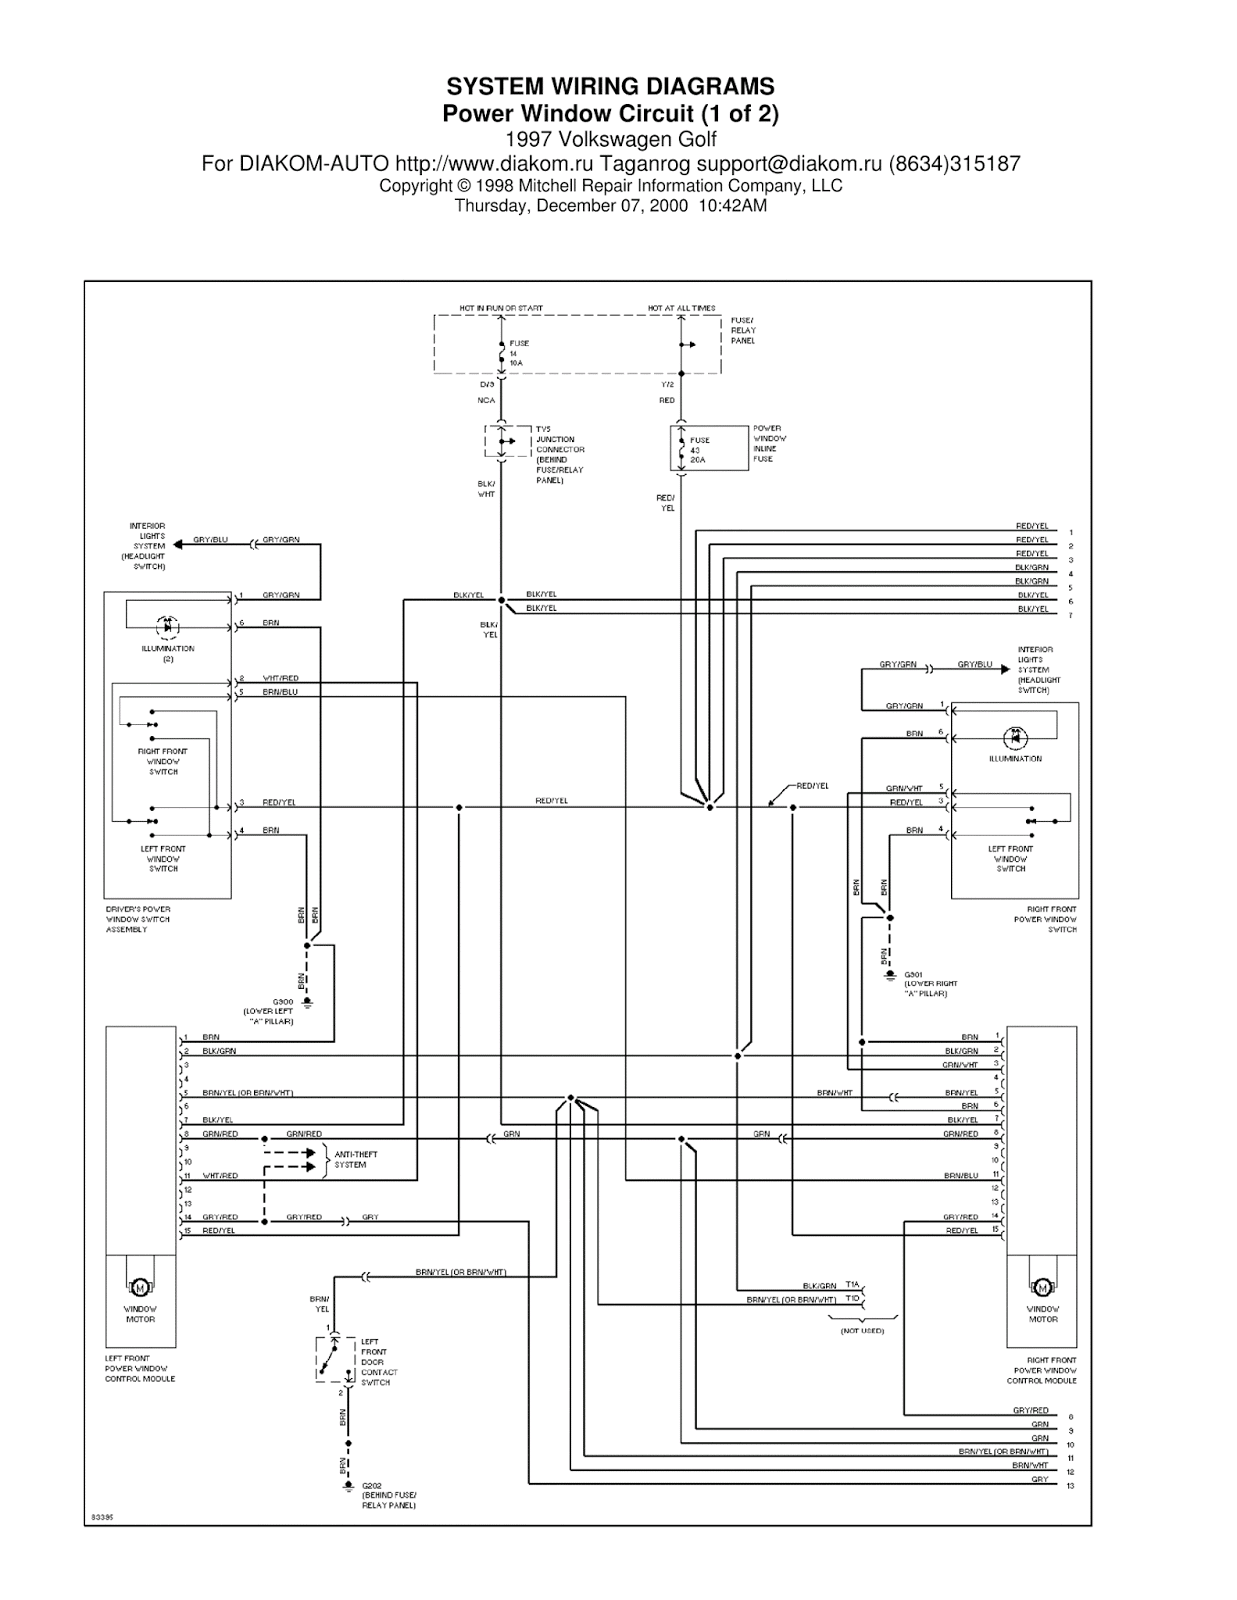 Vw Gti Wiring Diagram, Vw, Free Engine Image For User